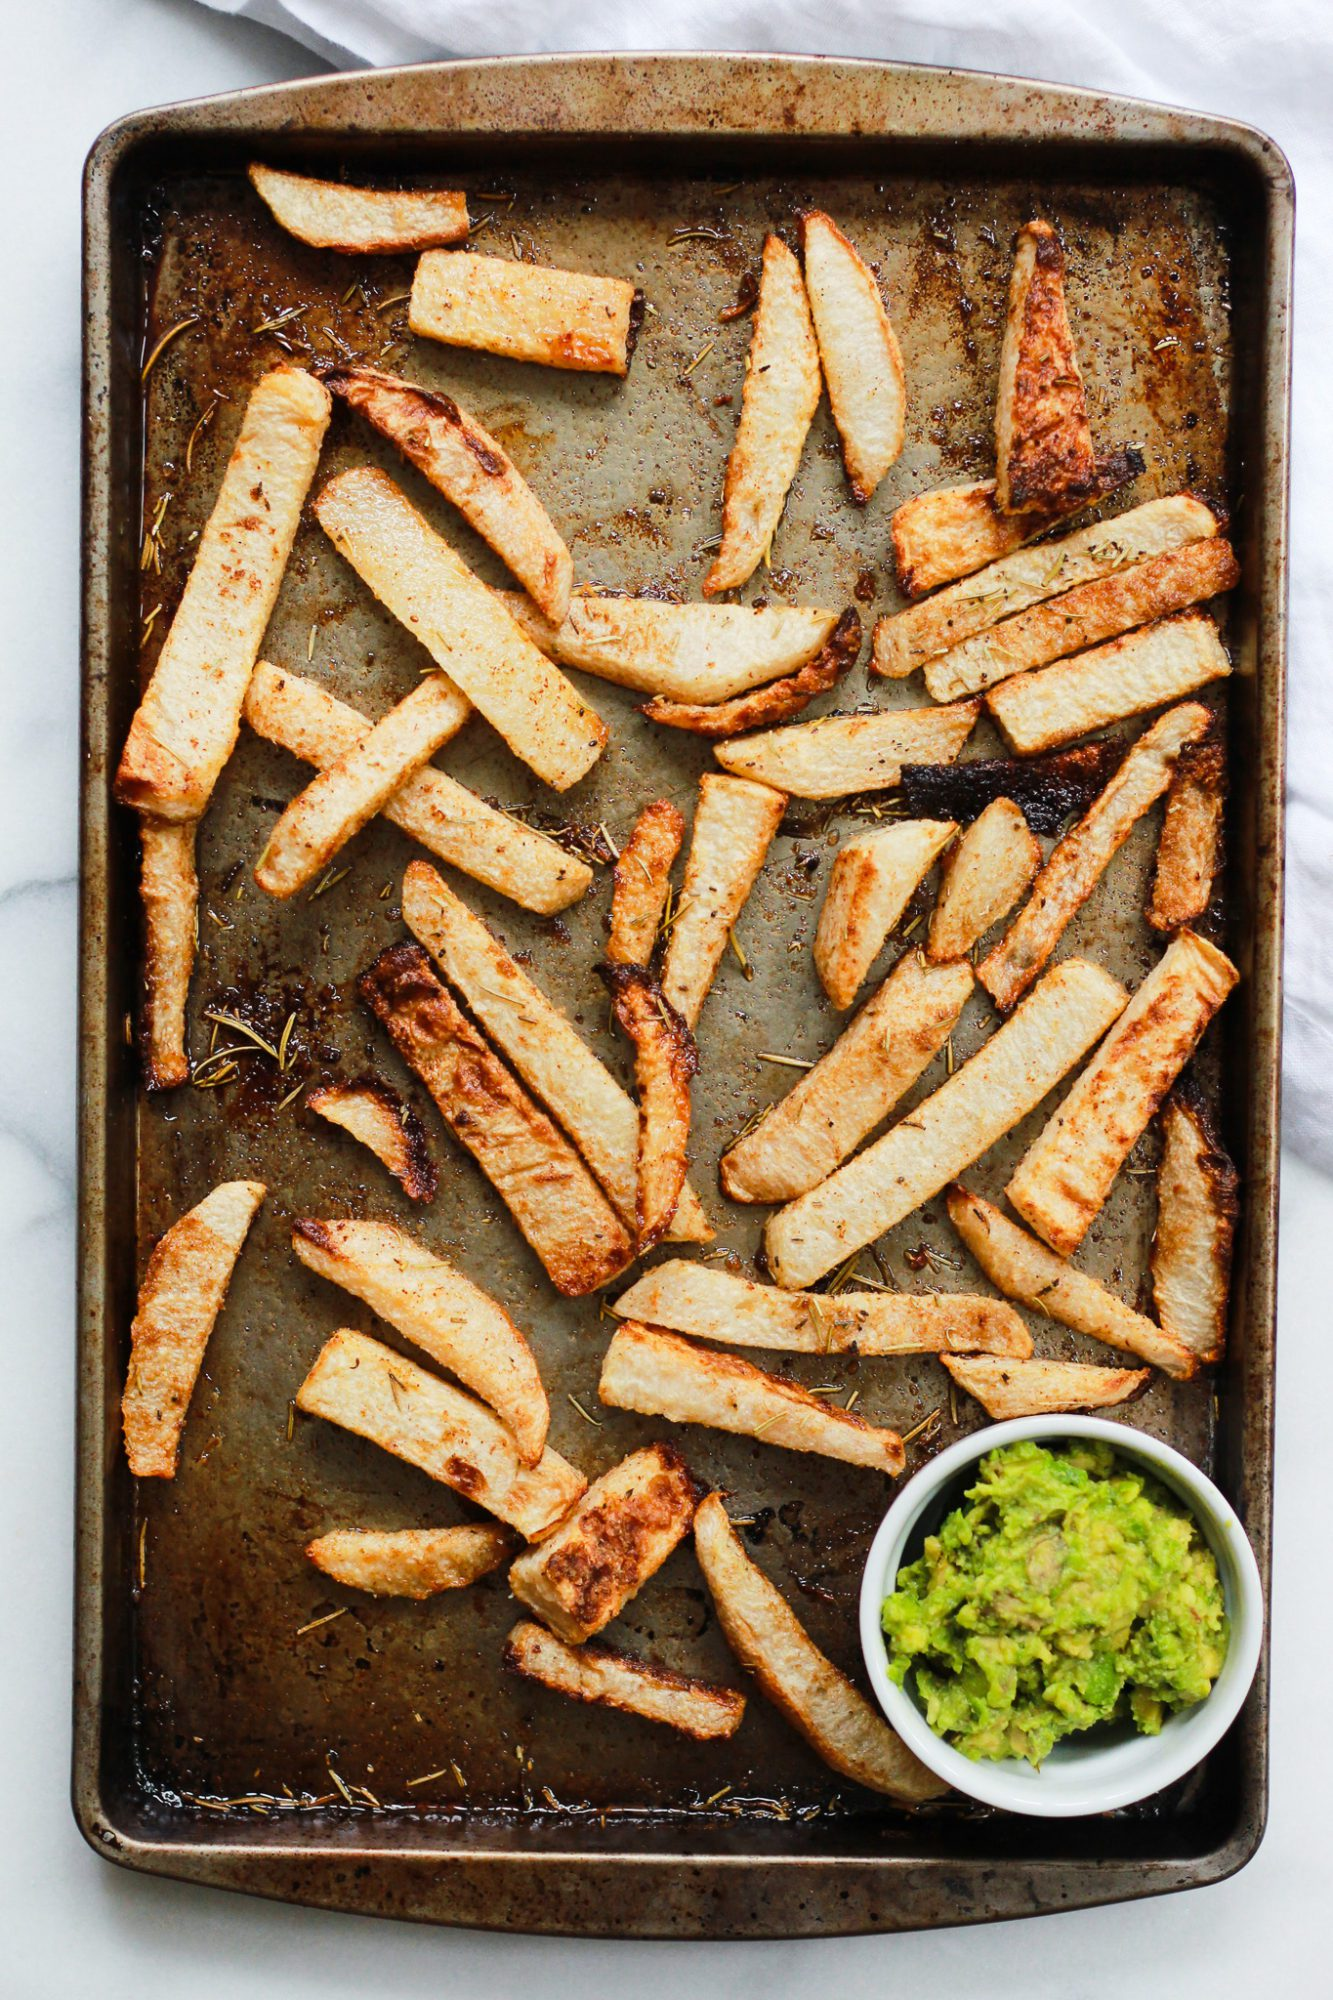 tray of baked jicama fries with guacamole